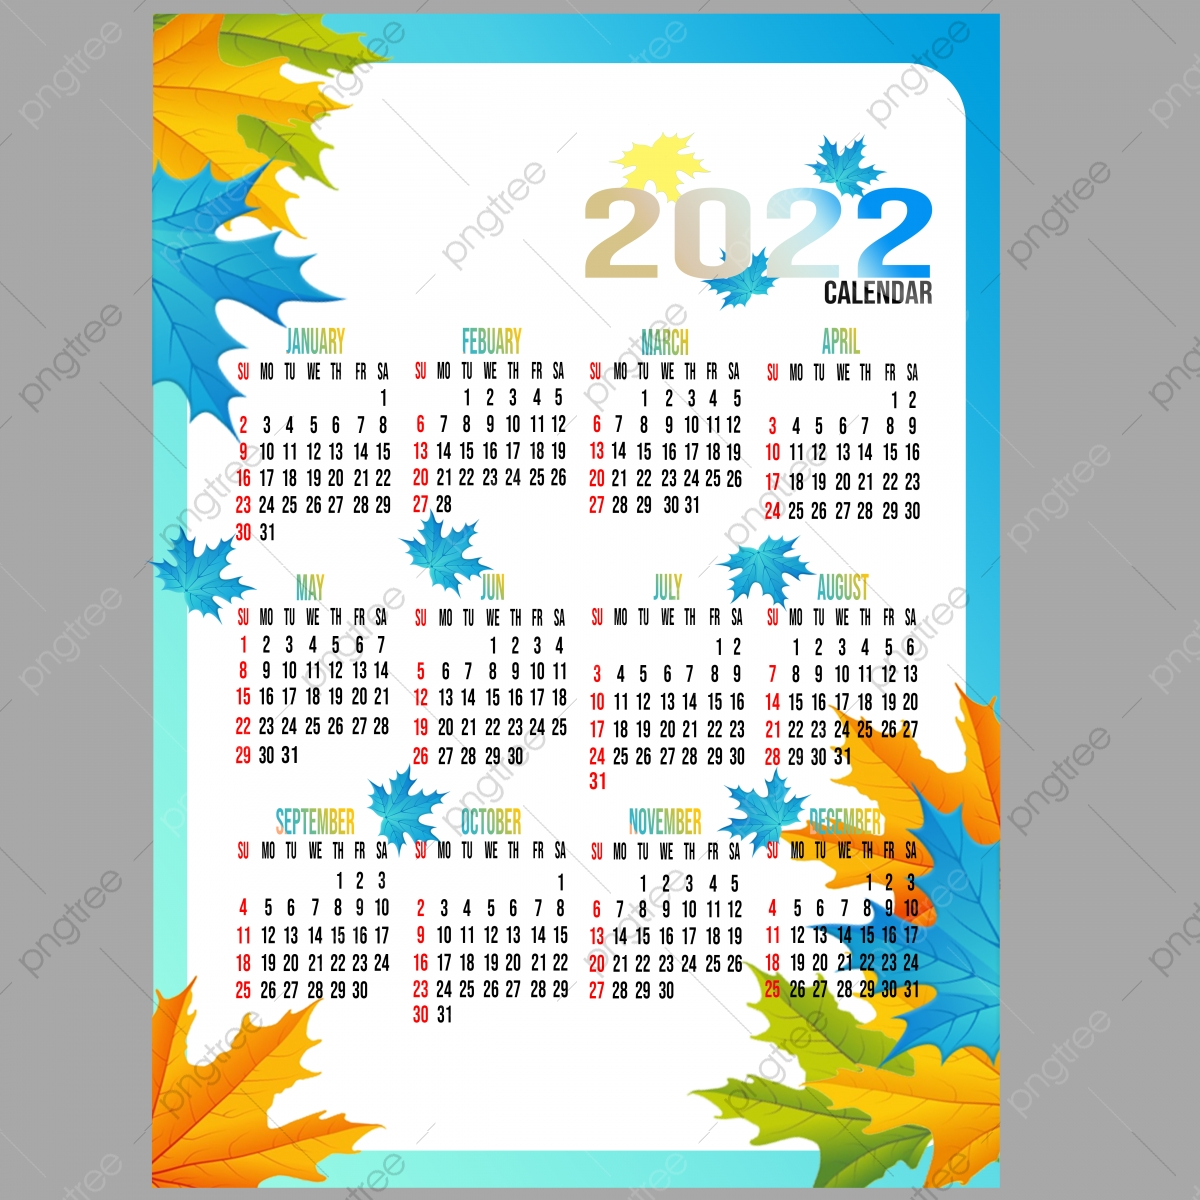 Psd Calendar 2022.Calendar 2022 Png Images Vector And Psd Files Free Download On Pngtree